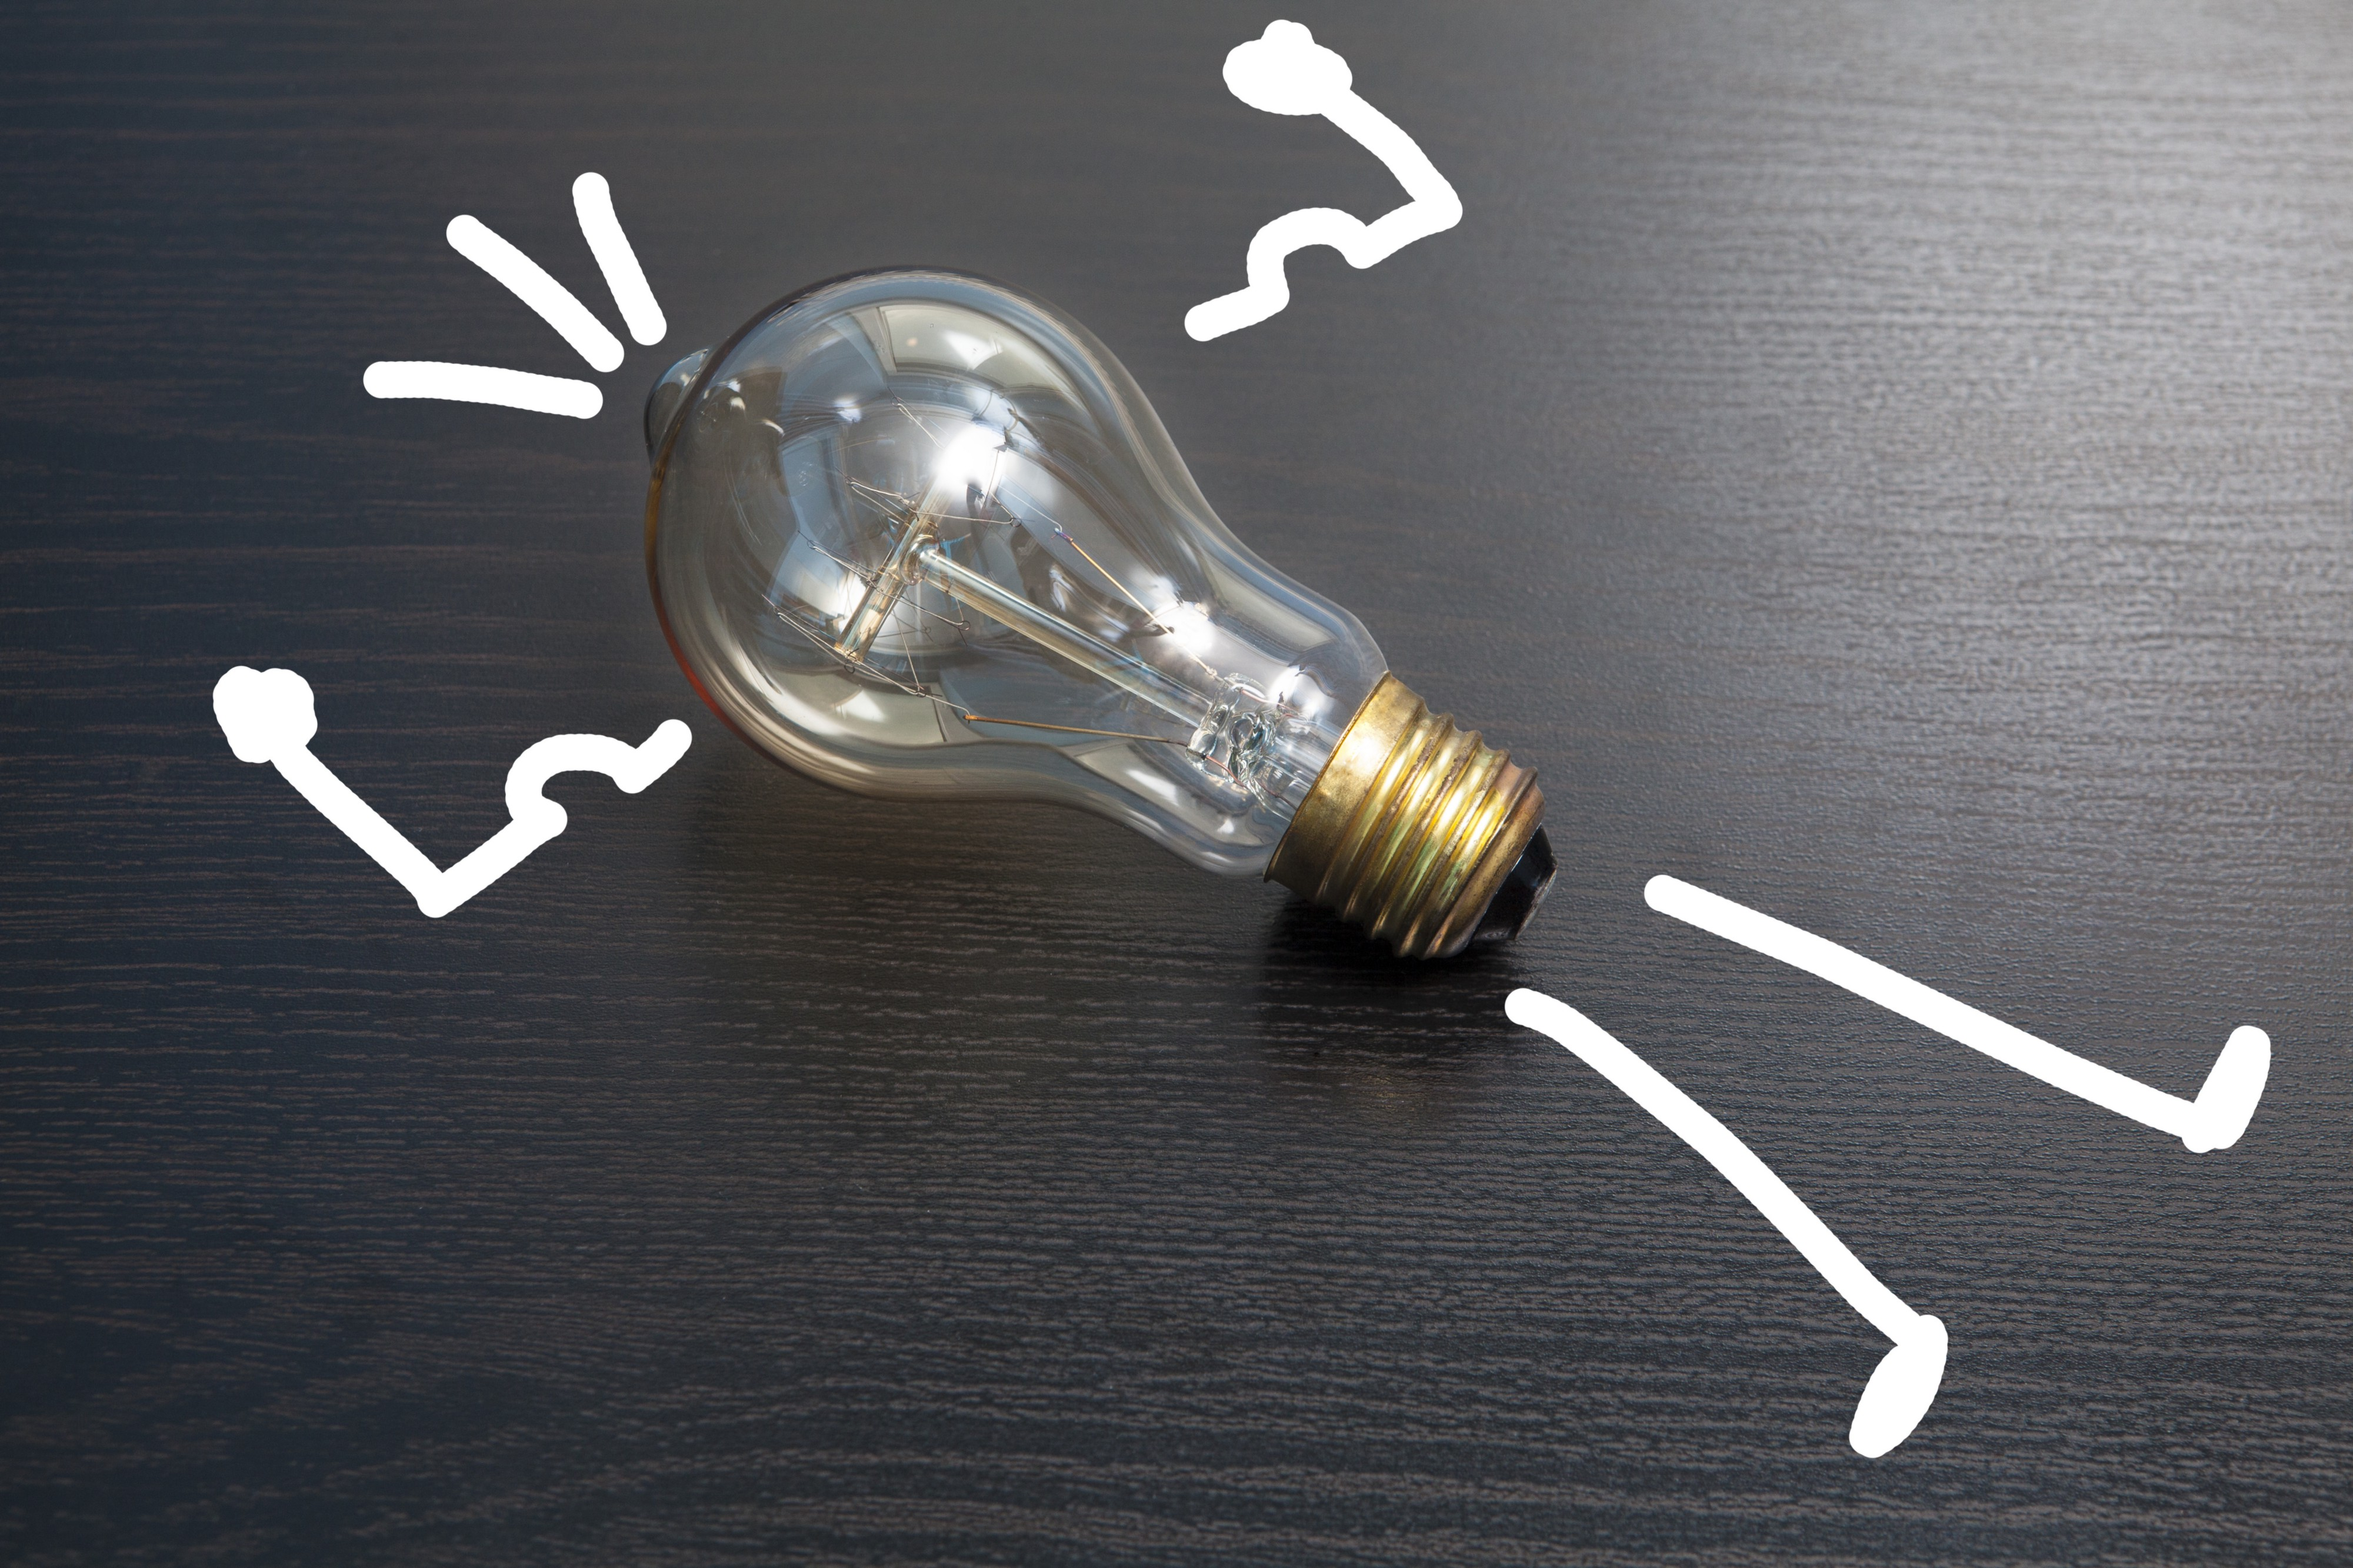 Light bulb to illistrate ideas for flash fiction